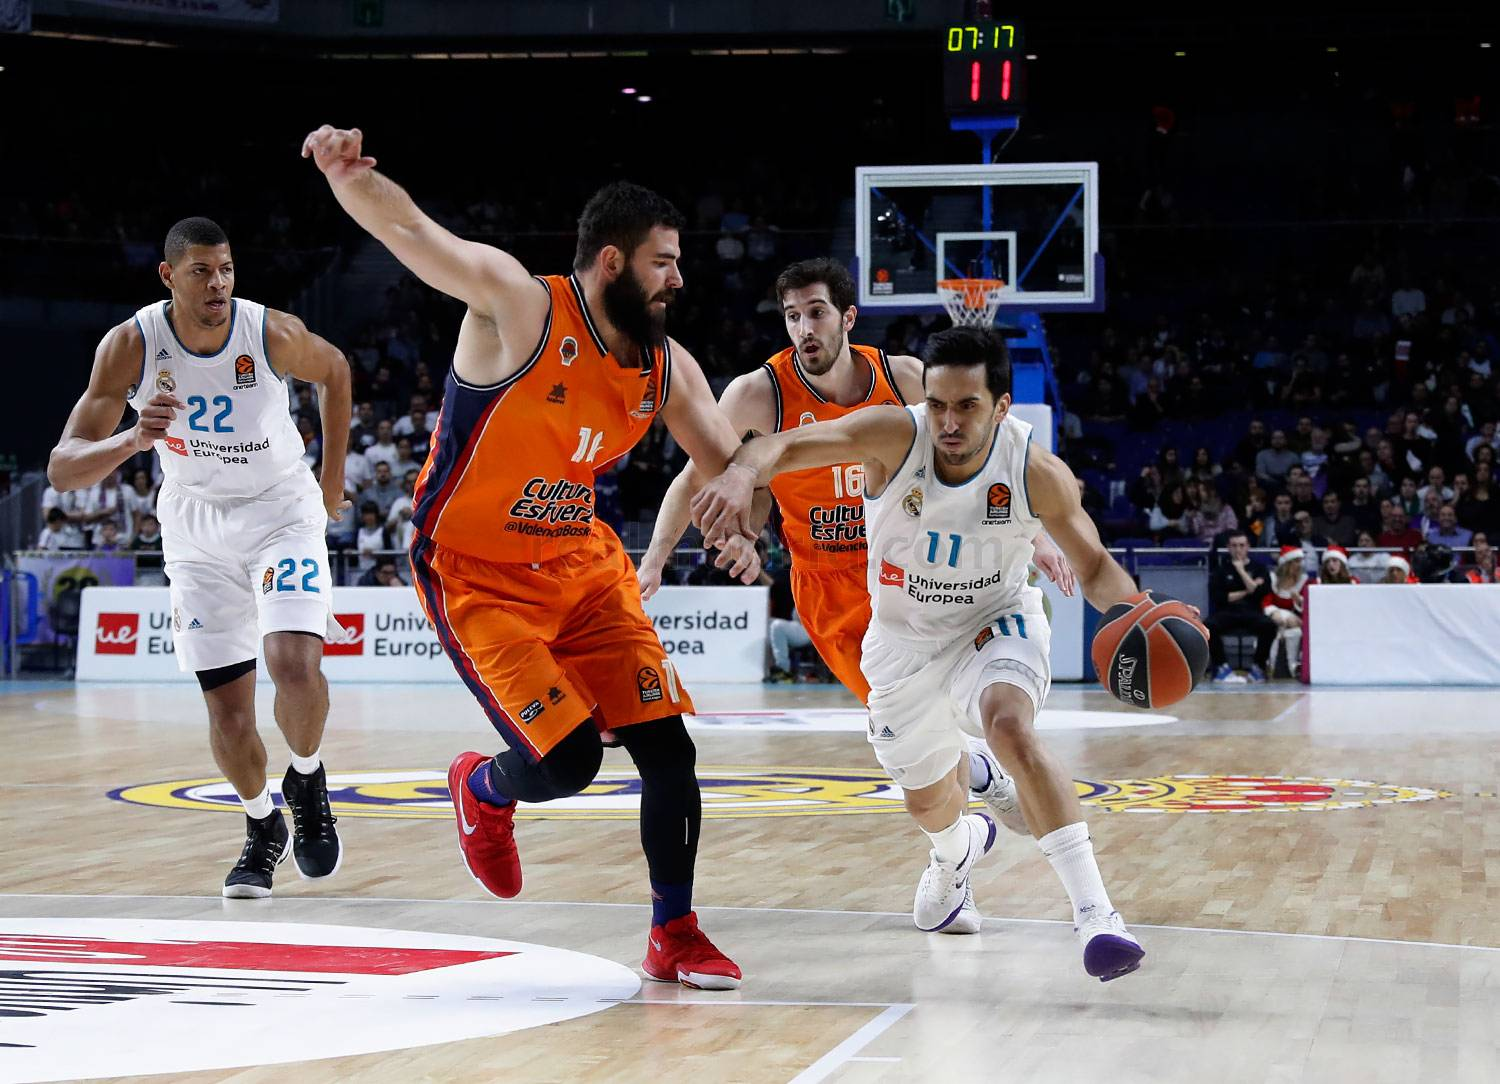 Real Madrid - Real Madrid - Valencia Basket - 19-12-2017